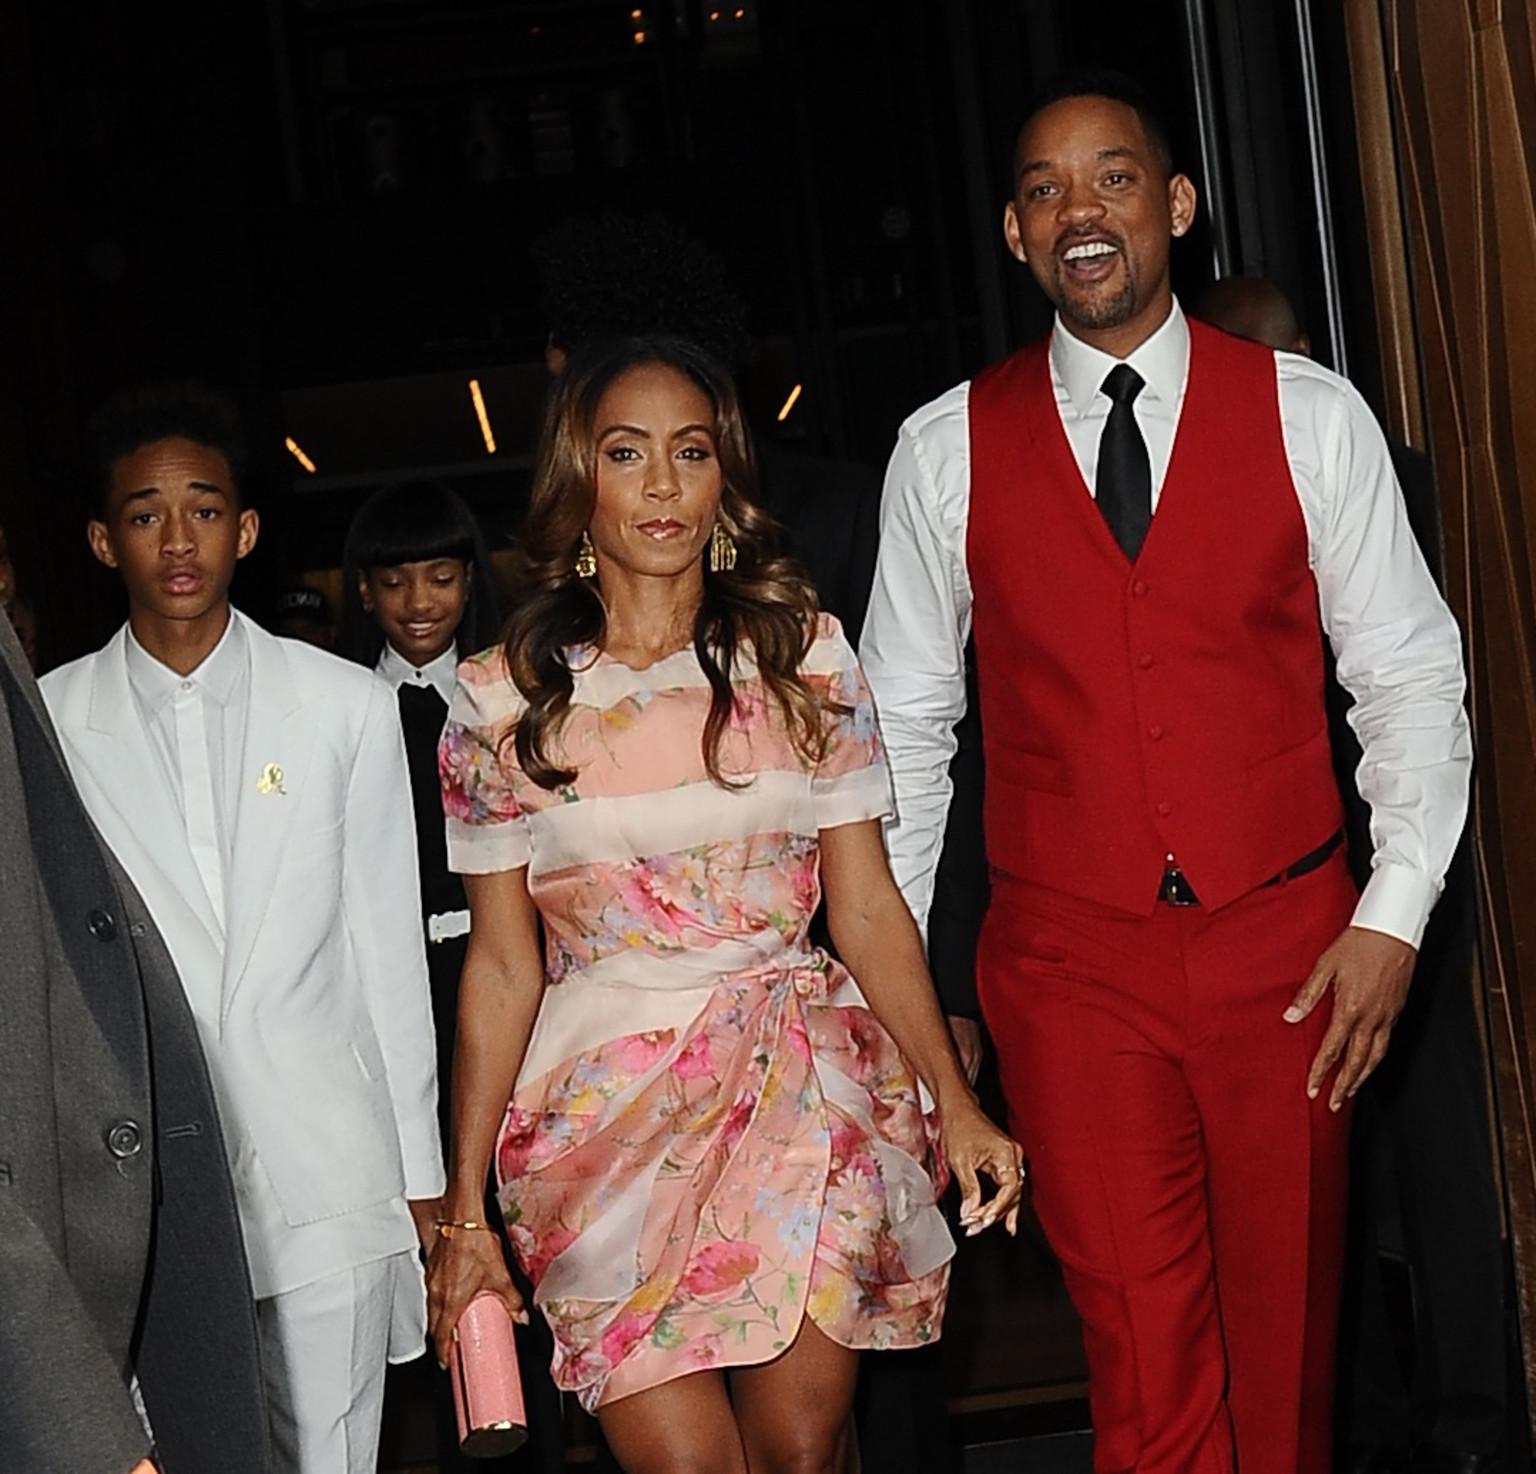 Peaceably Will Smith Jada Pinkett Smith Are Not Selling Ir Million Mansionor Divorcing Huffpost Will Smith Jada Pinkett Smith Are Not Selling Ir Will Smith House West Philly Will Smith House Net Worth curbed Will Smith House